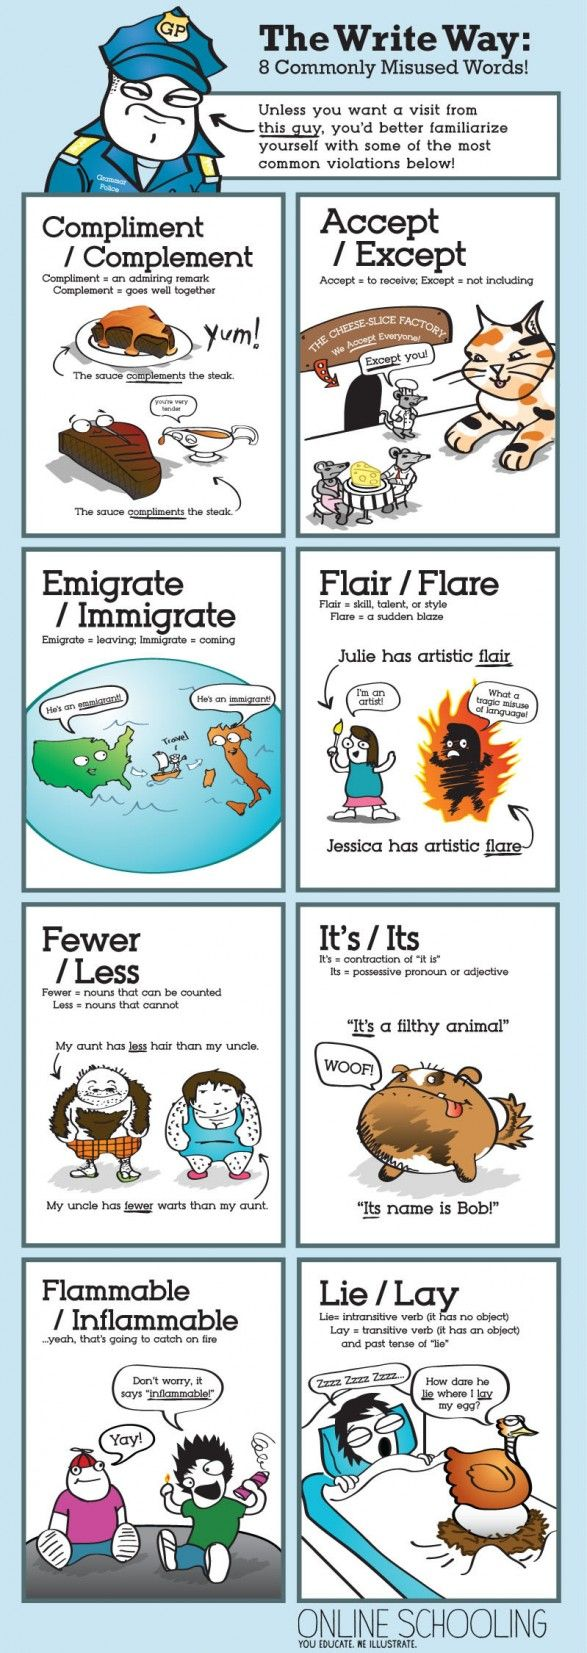 The Write Way: 8 Commonly Misused Words!